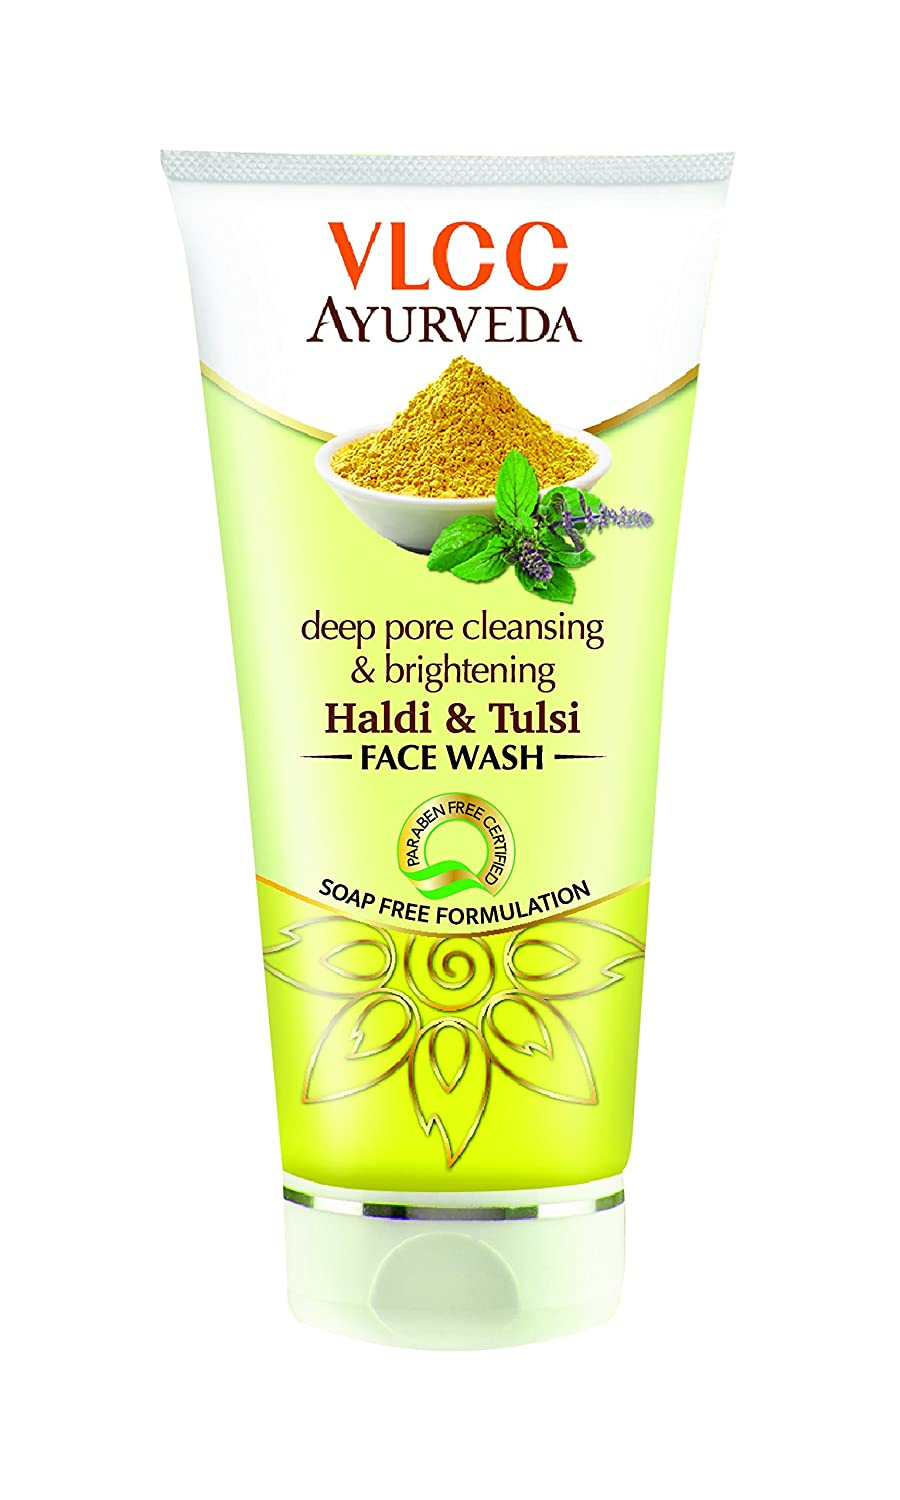 VLCC Ayurveda Deep Pore Cleansing & Brightening Haldi And Tulsi Face Wash